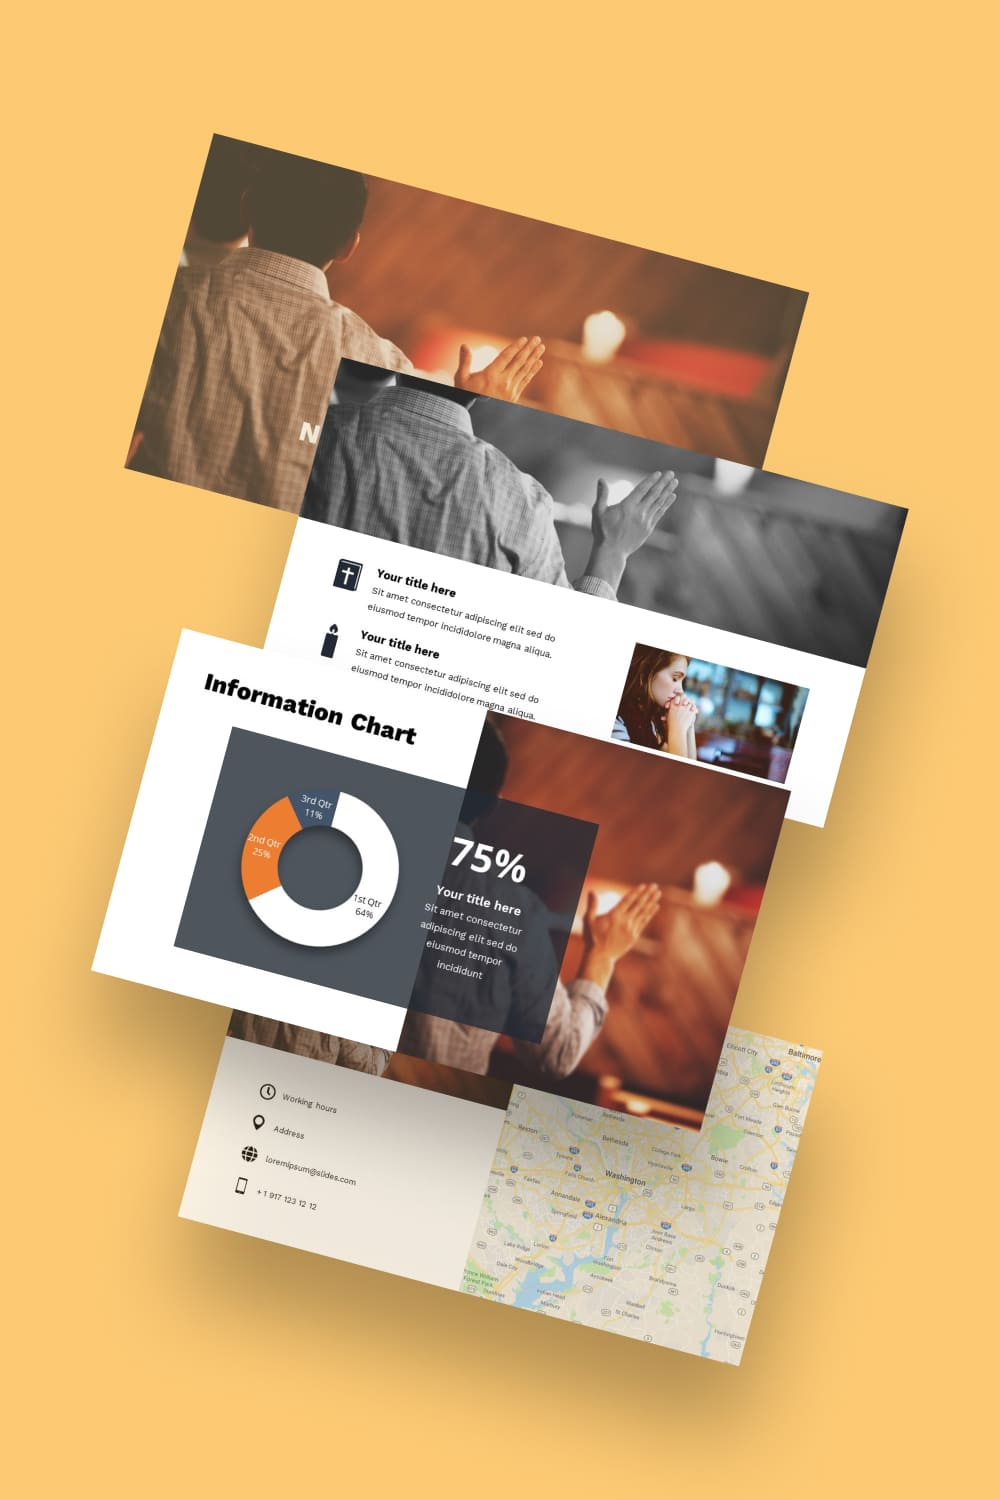 Come Join Us Free Worship Powerpoint Background. Template for ministry in warm autumn colors.